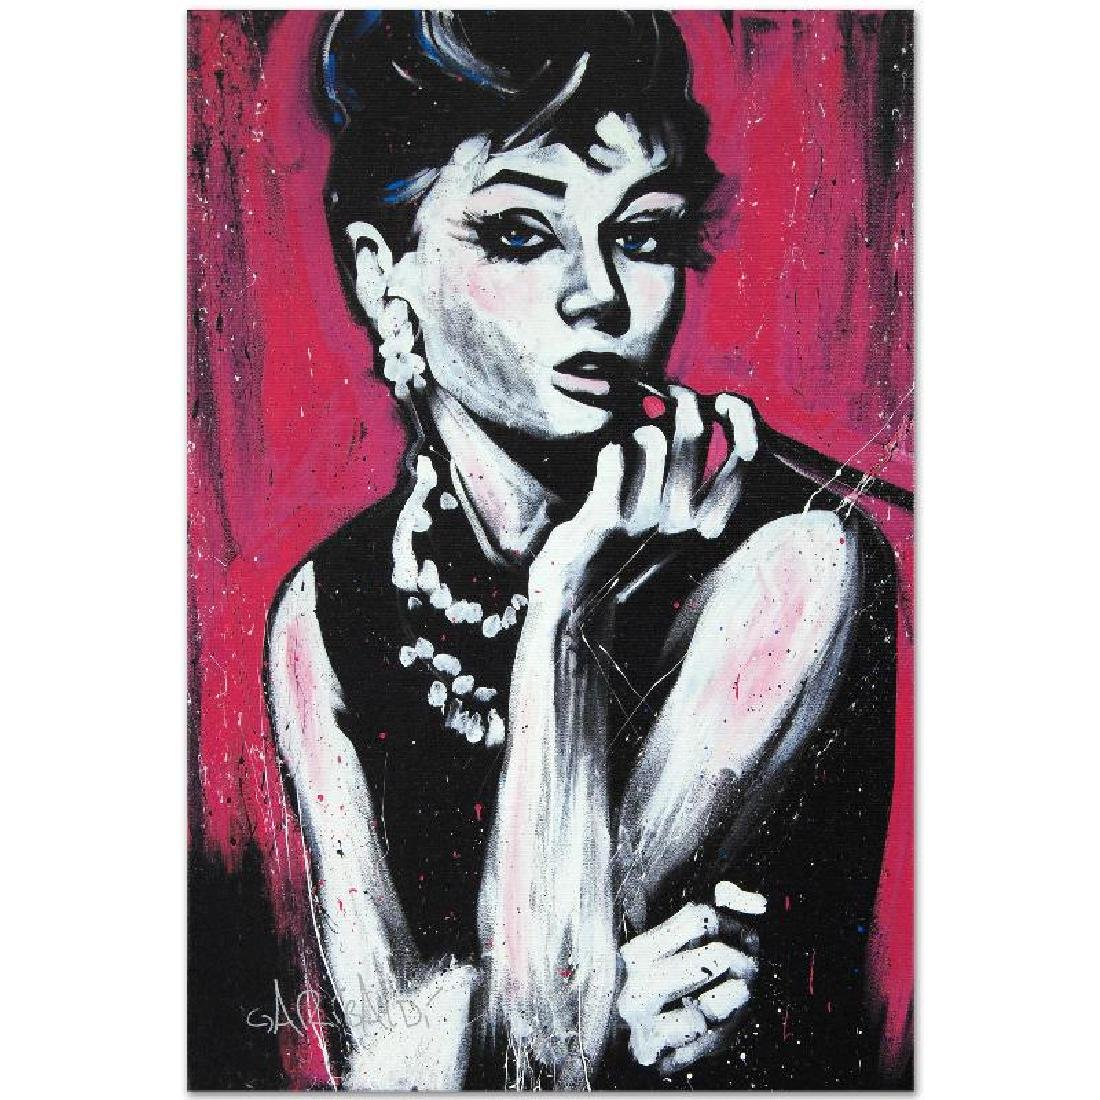 Audrey Hepburn (Fabulous) by Garibaldi, David - 3